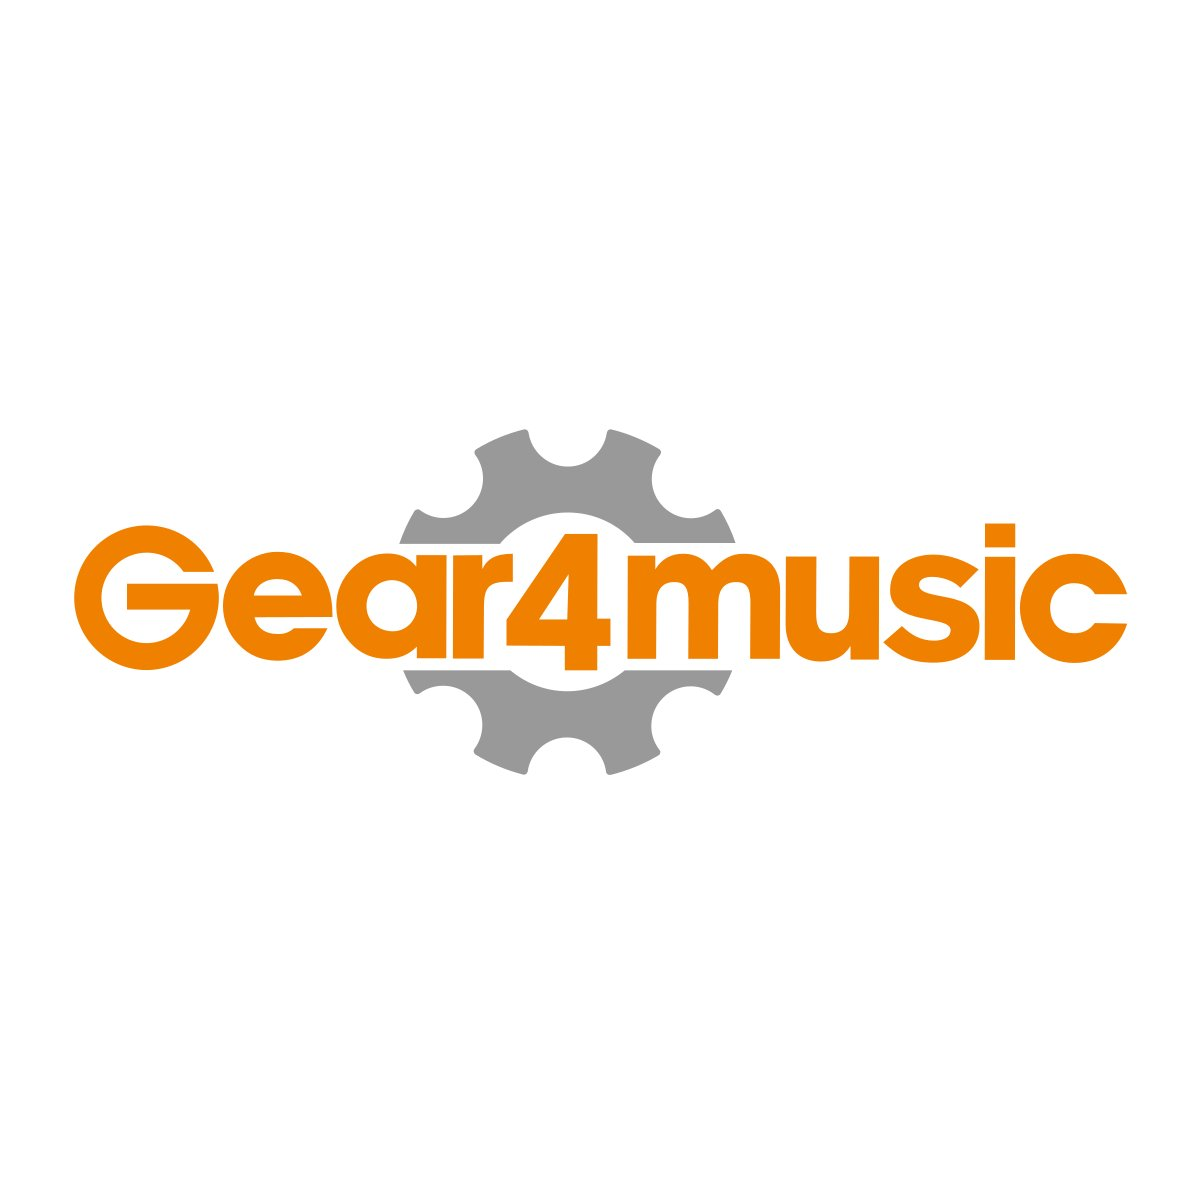 Clairon de Gear4music